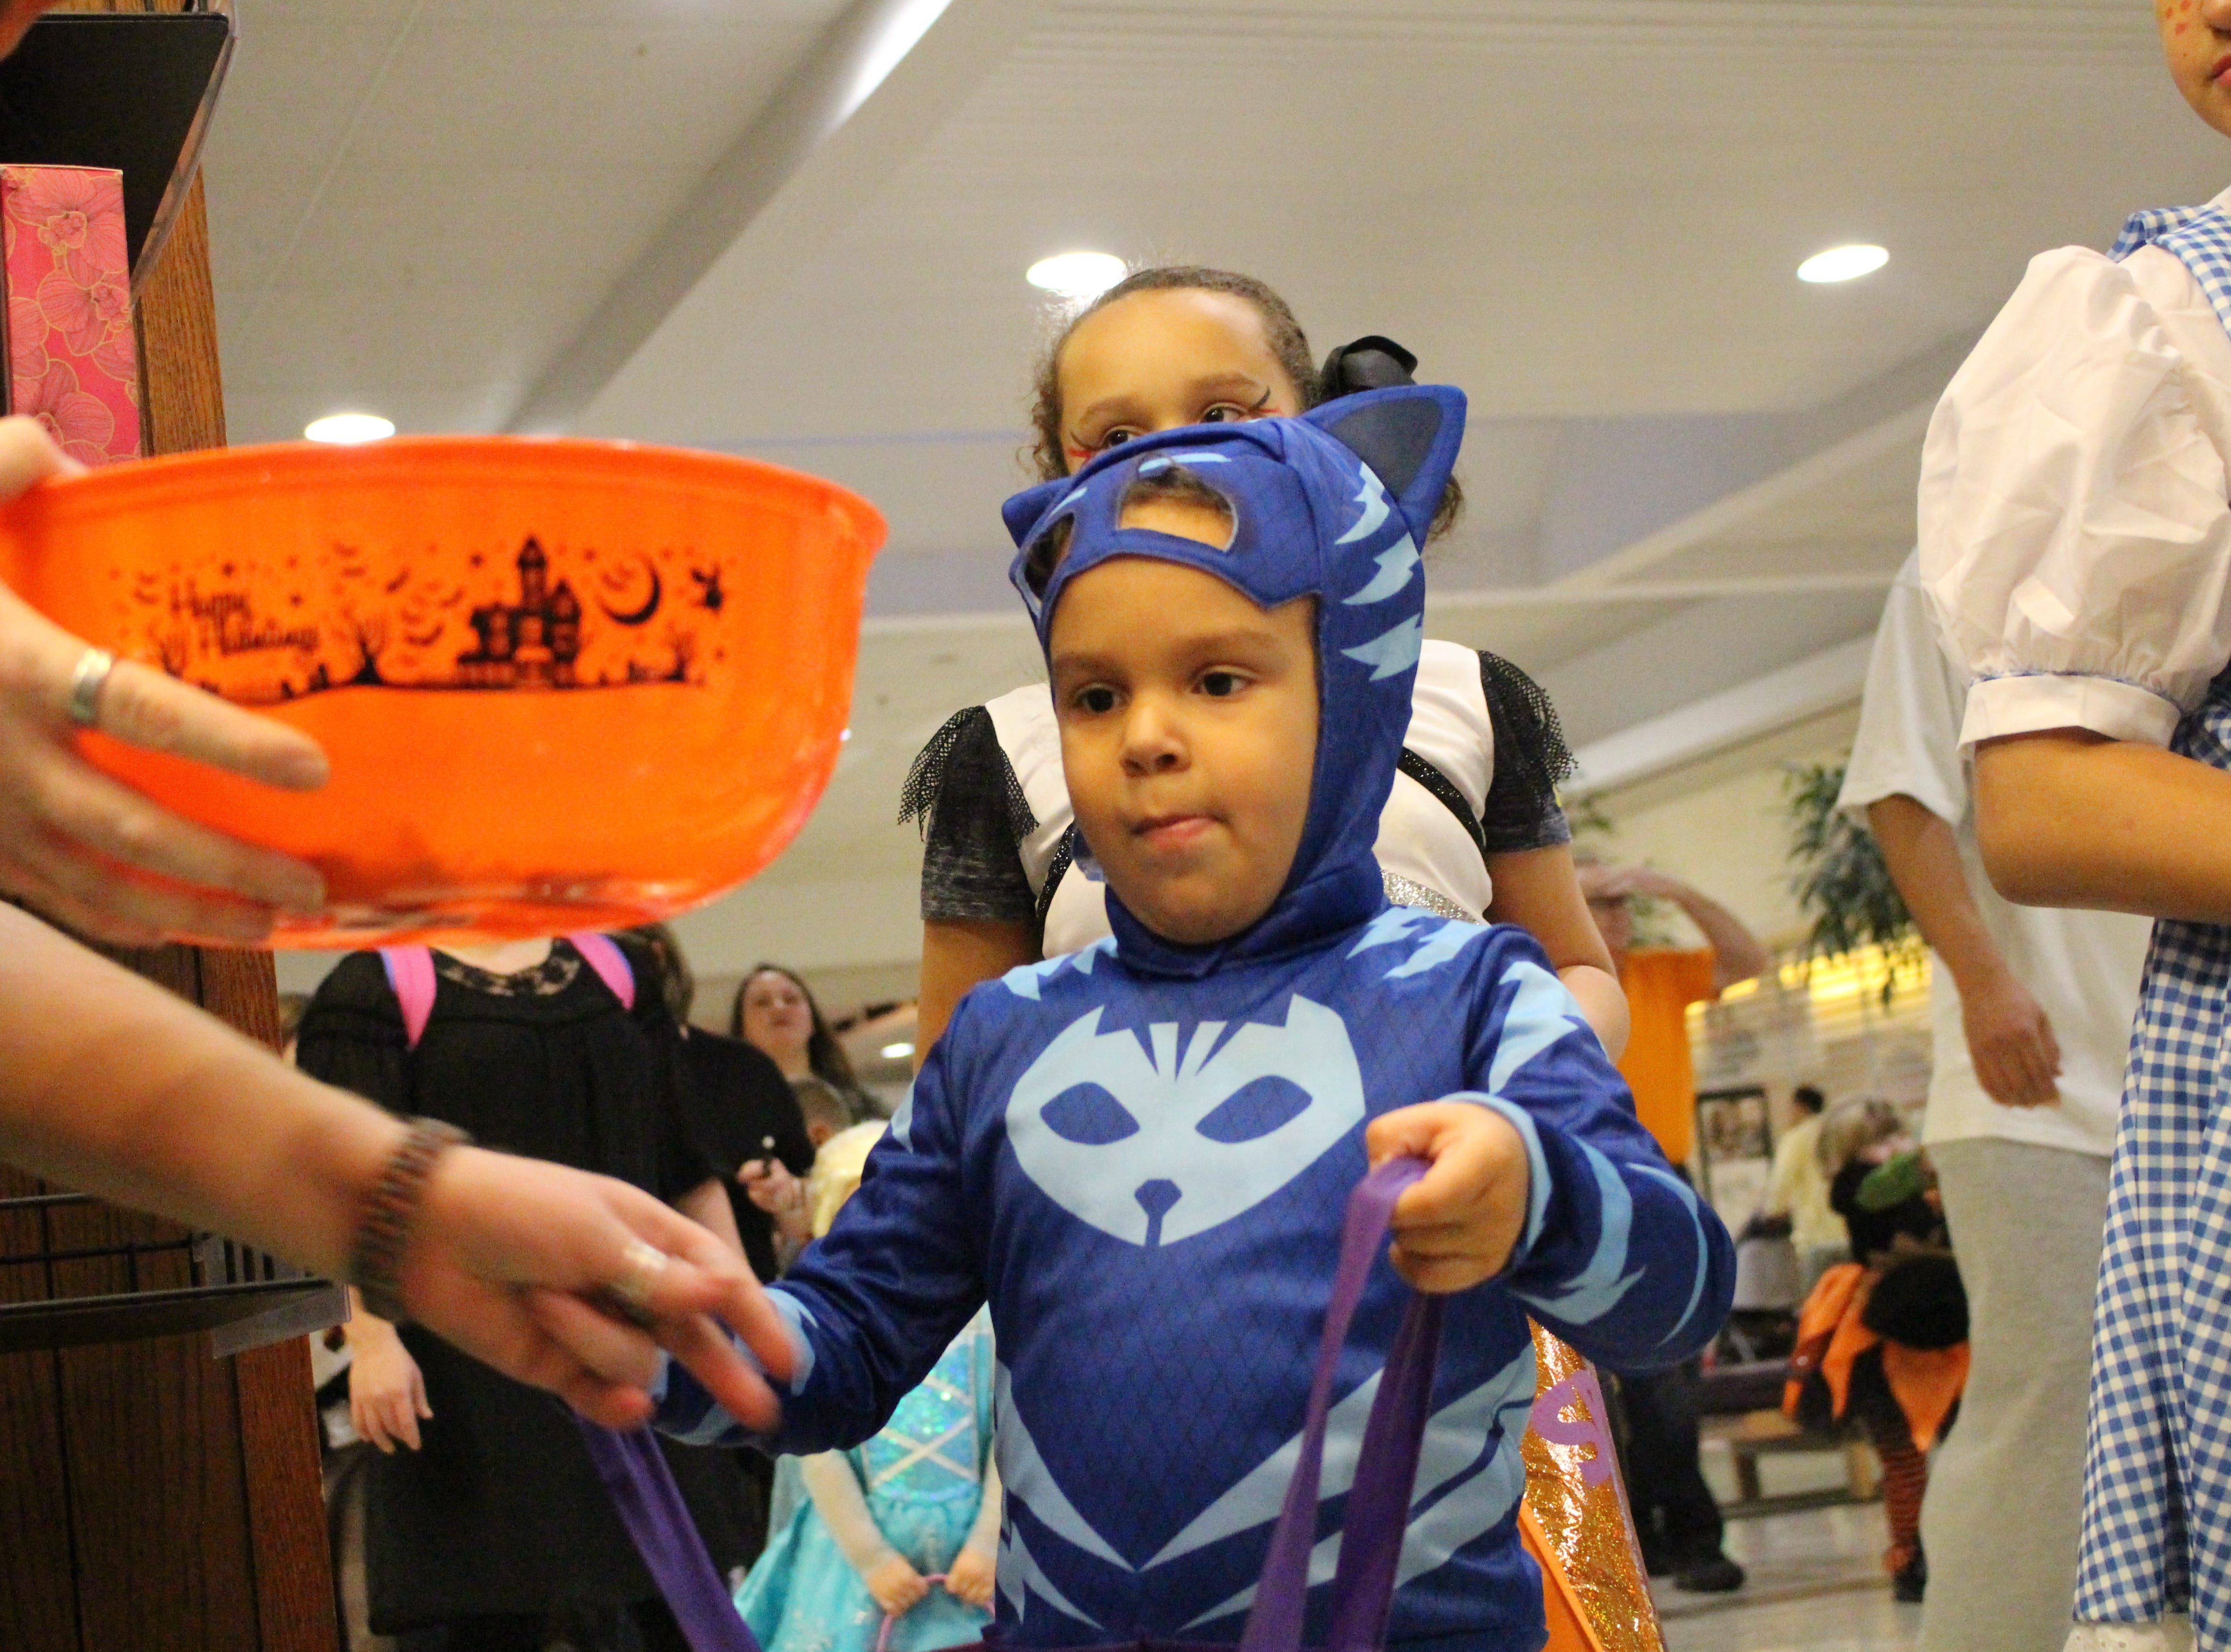 Children and families circled Colony Square Mall, grabbing candy and goodies on Halloween night.